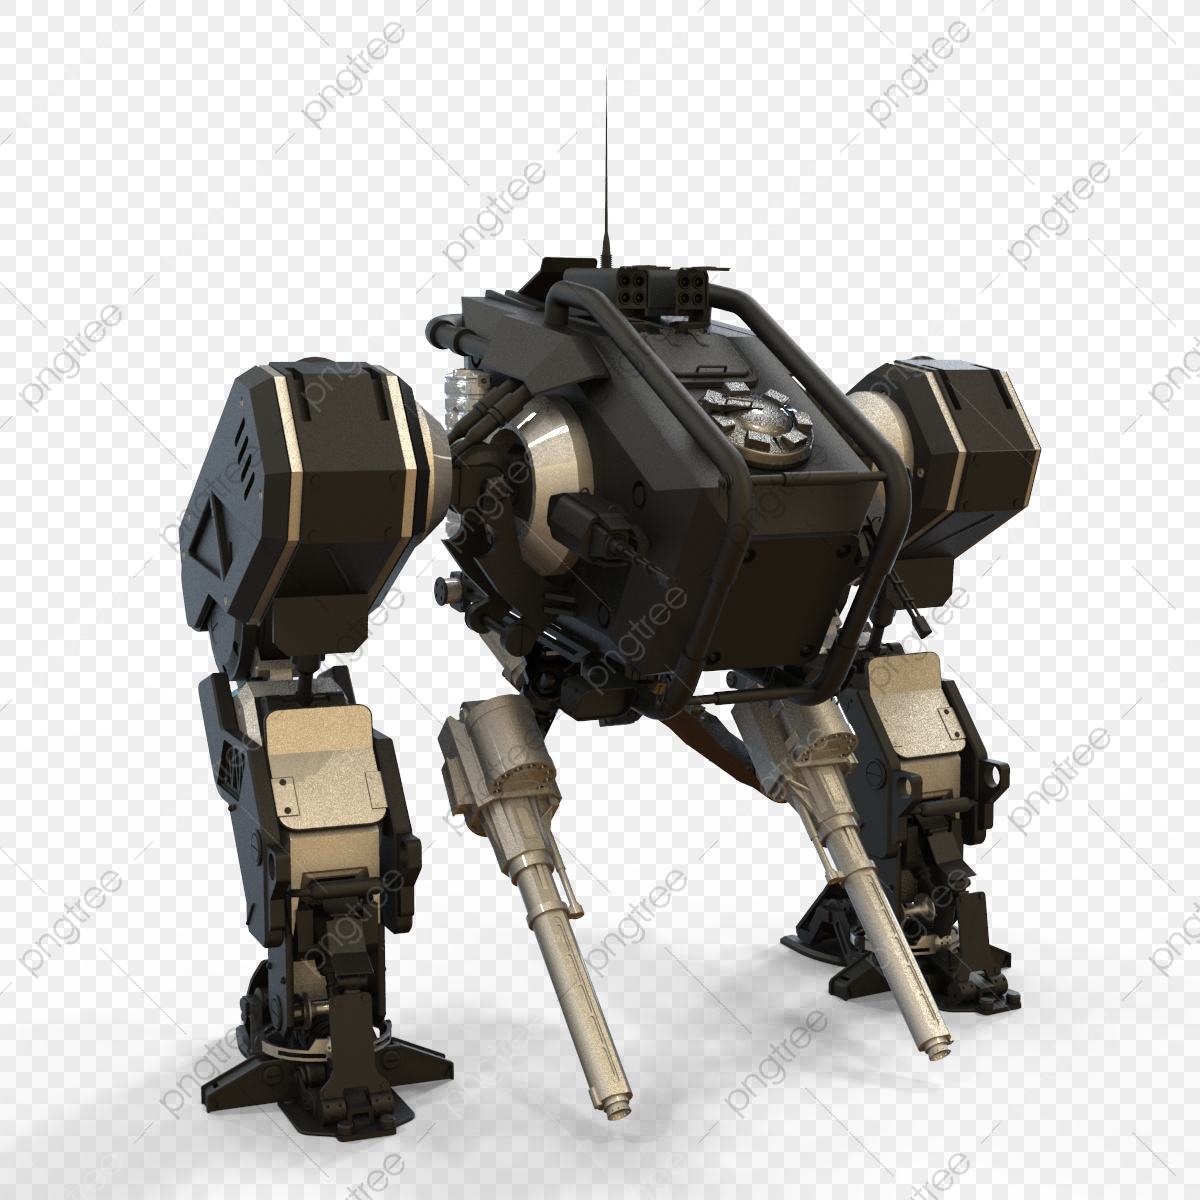 3d Rendering Of A Robot Standing On A Isolated Background